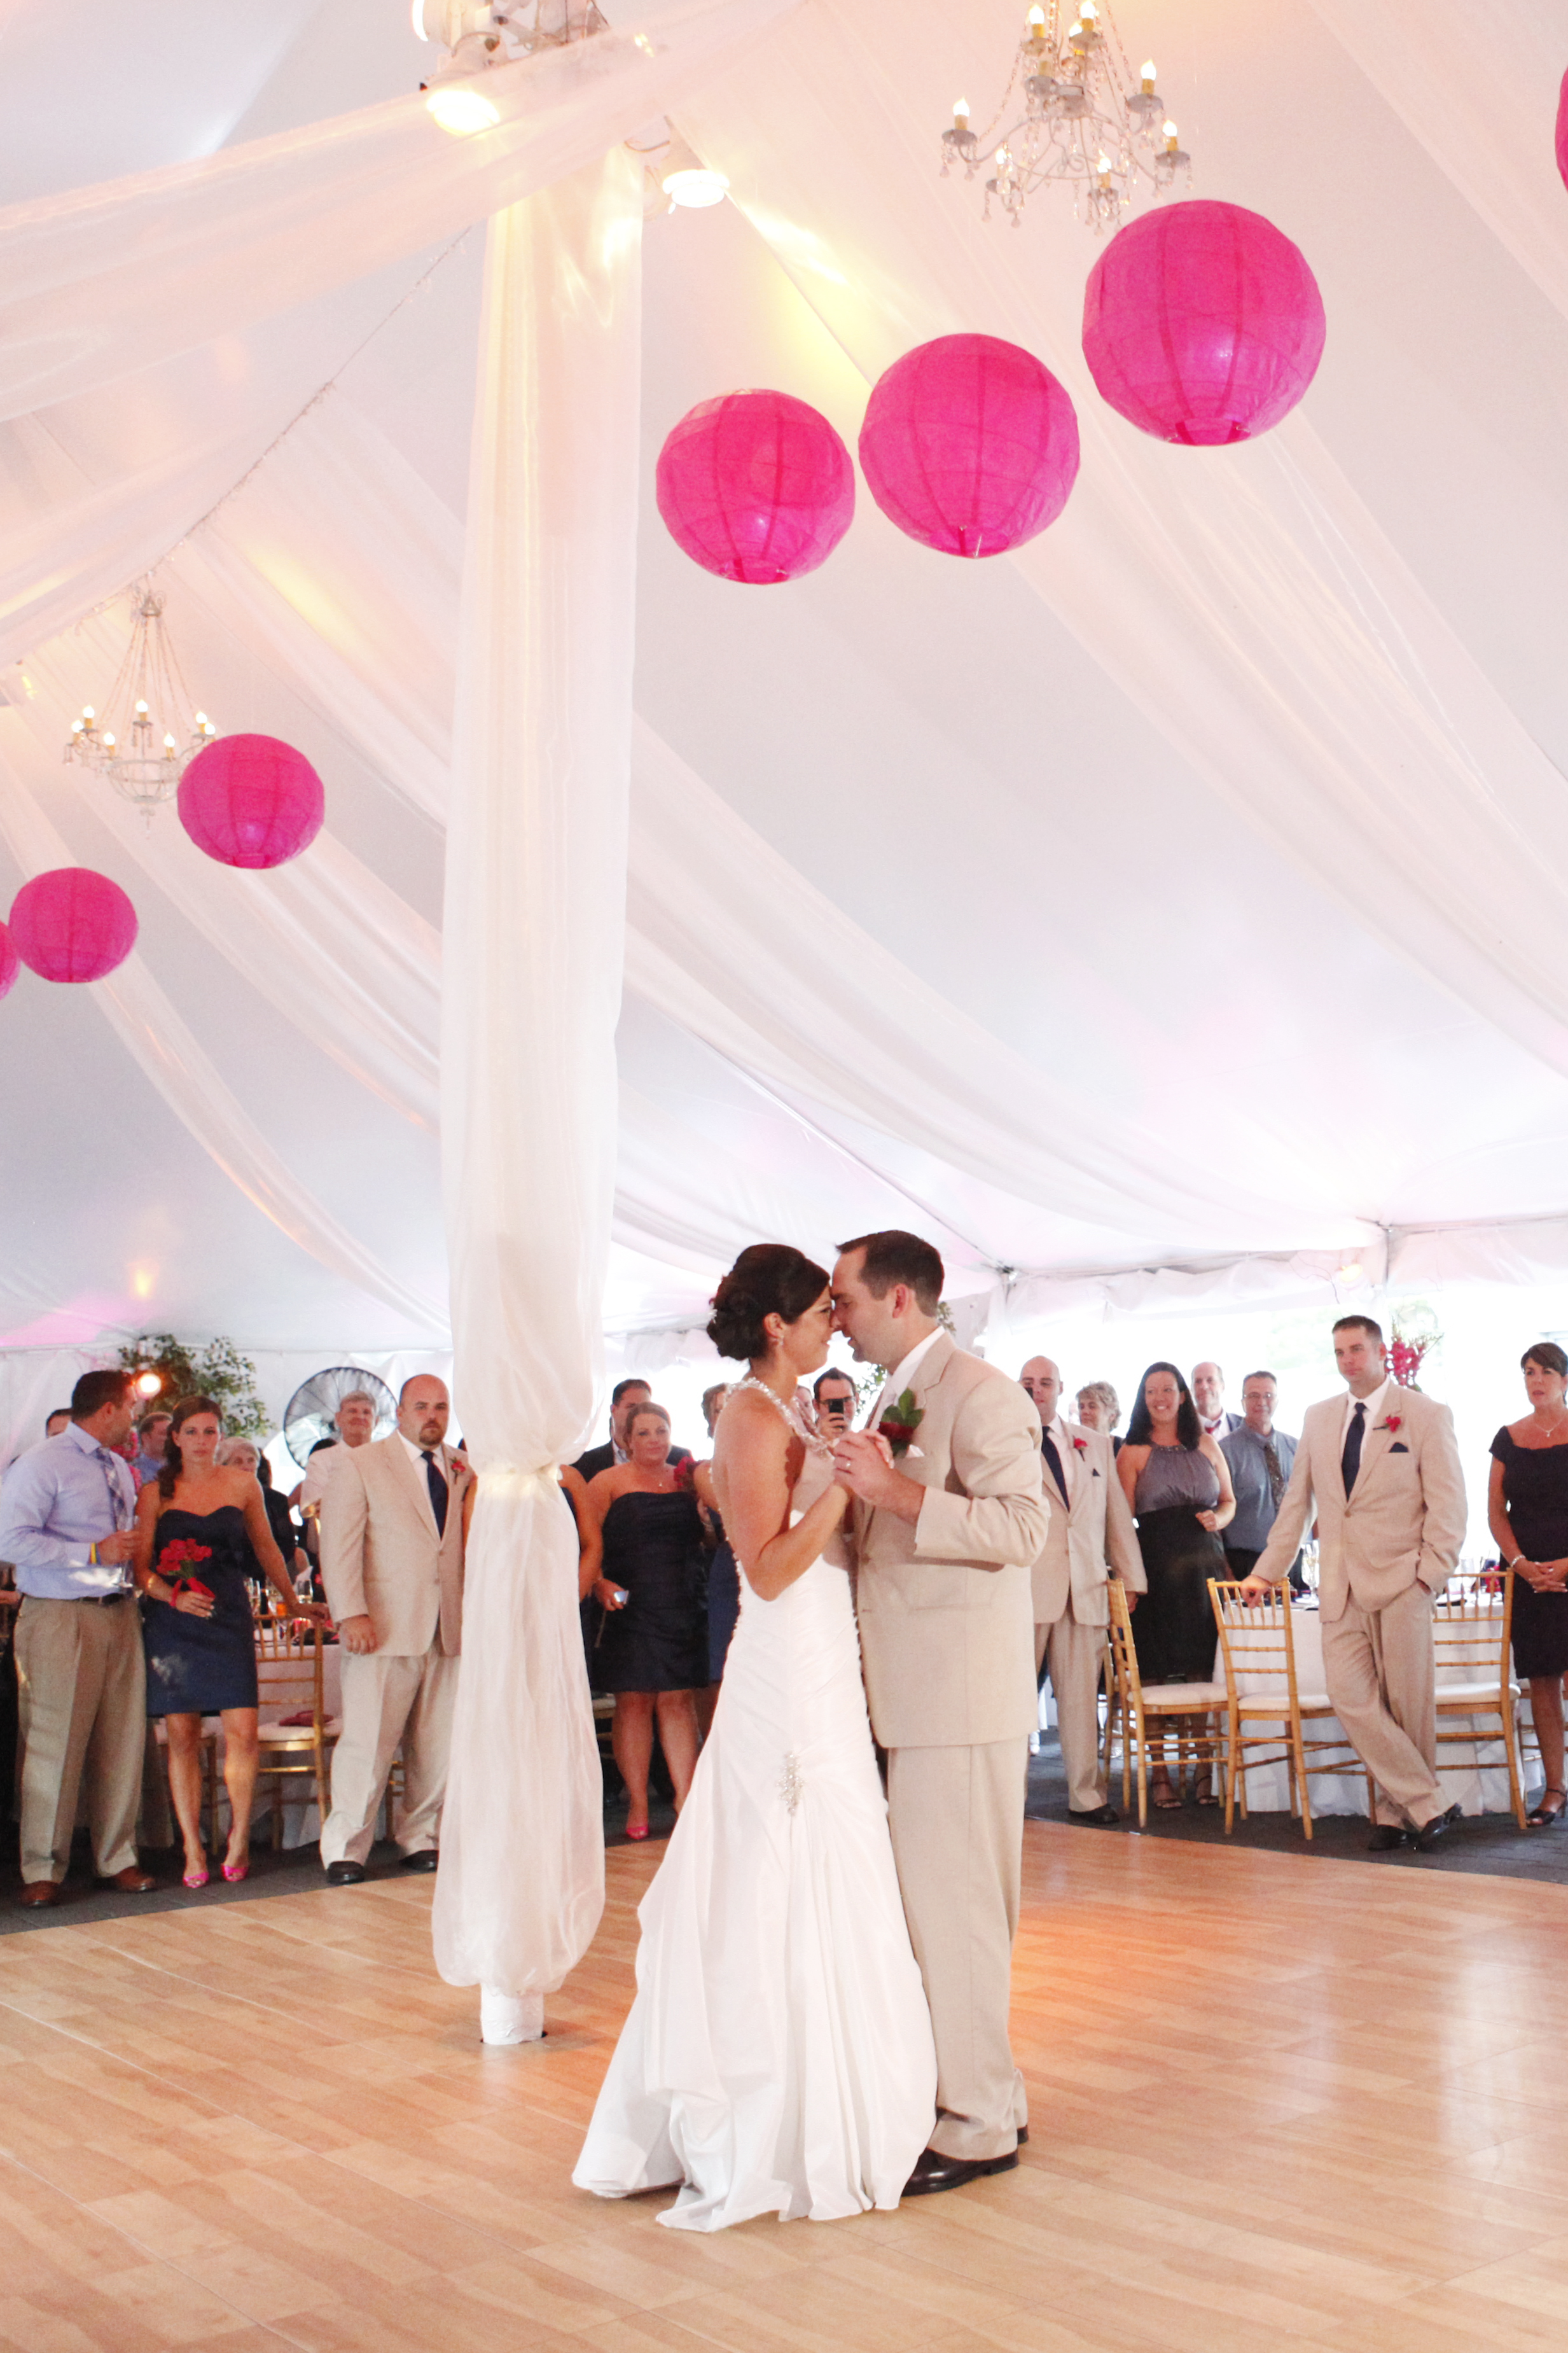 A first dance in the beautiful tent.